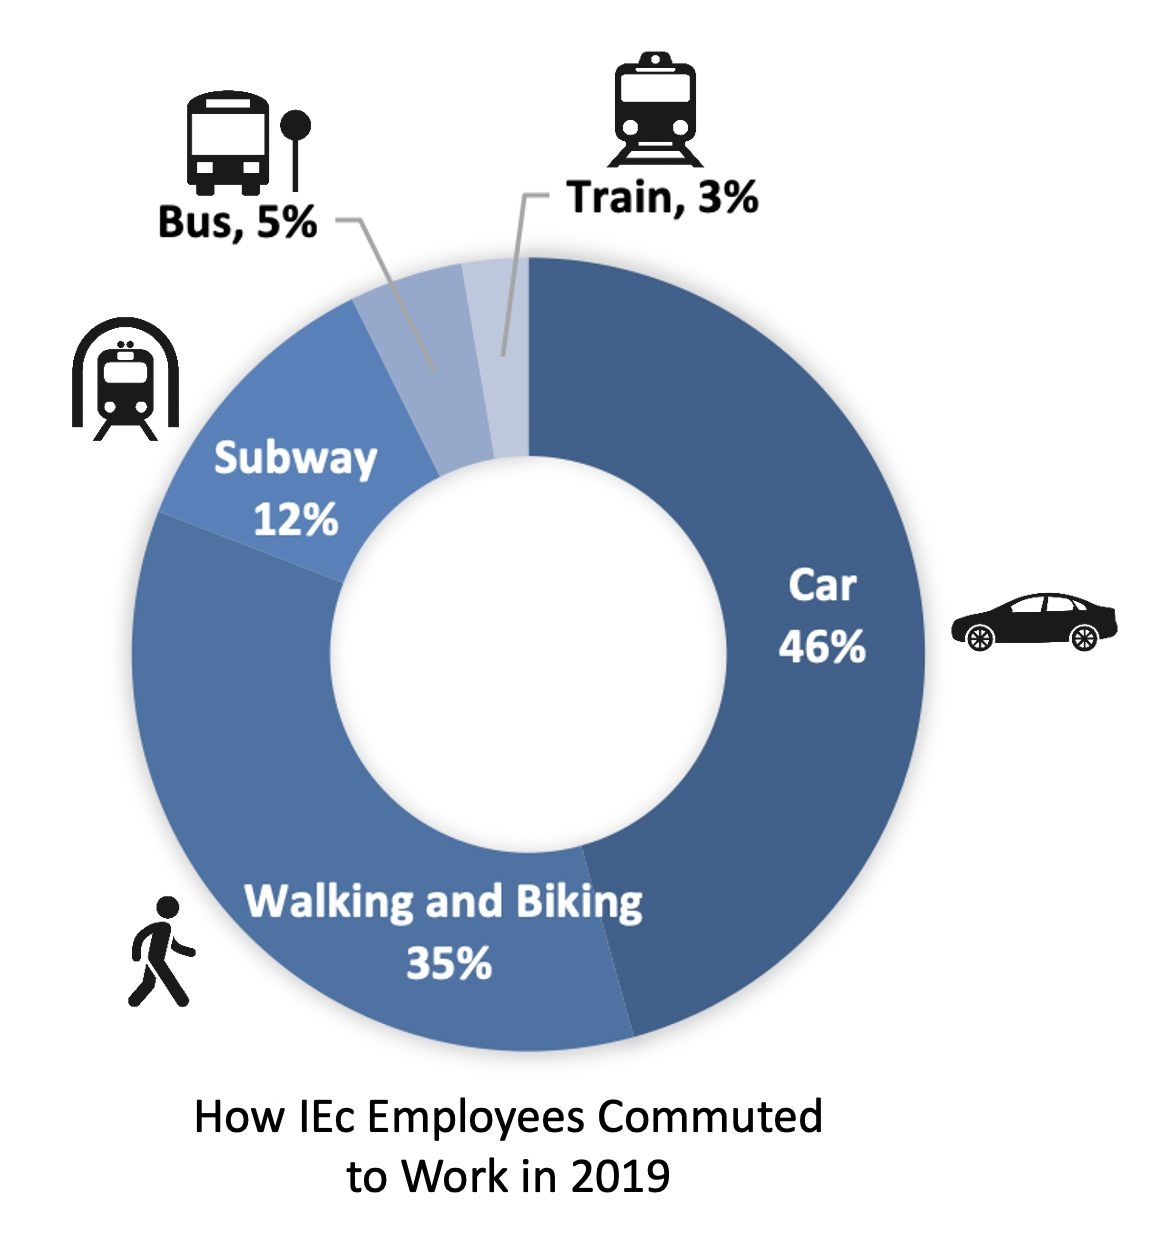 Graph showing IEc commuting methods